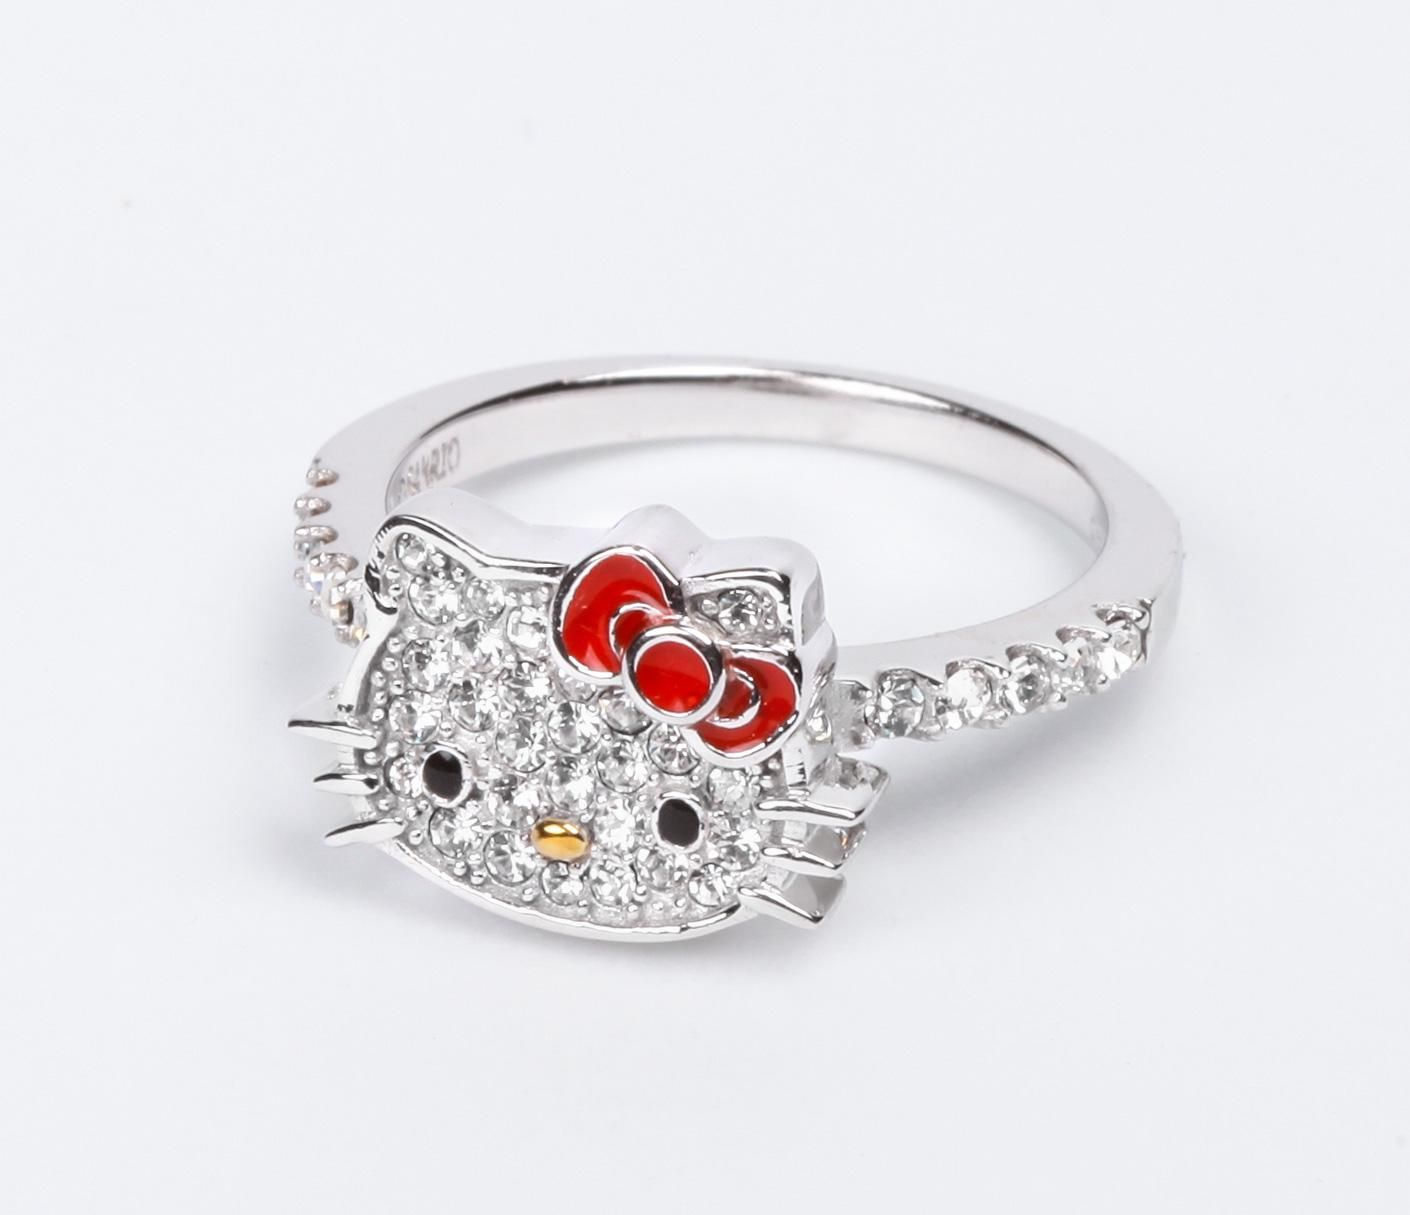 1dd0a3b02 Hello Kitty Ring Enamel and Crystals: Red Bow | Hello Kitty Birthday ...